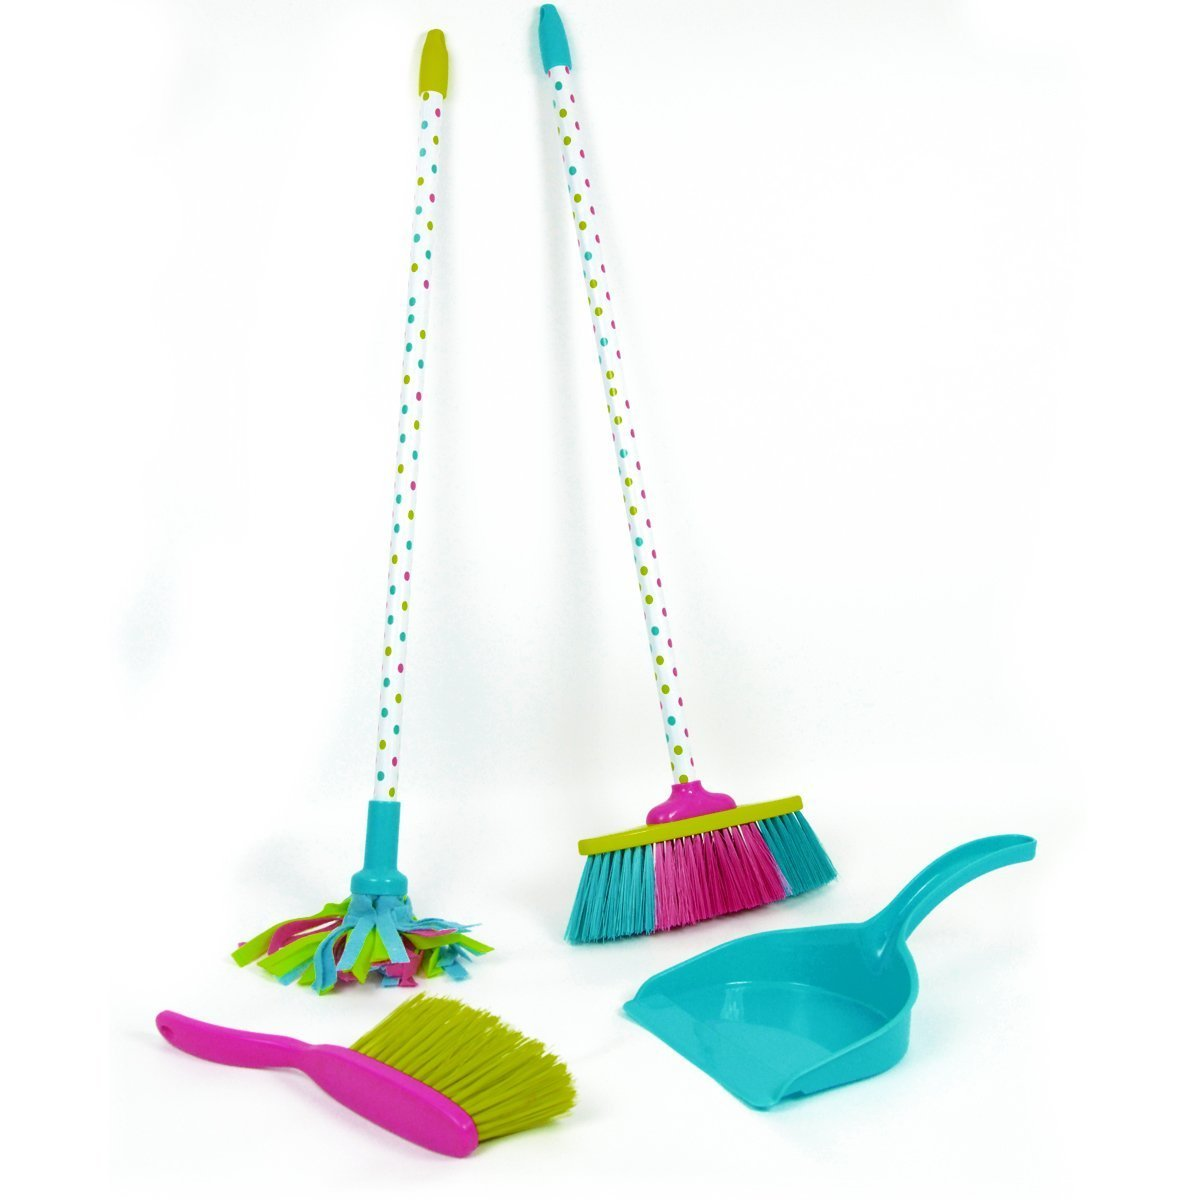 Playkidz PKCS001 Pretend Play Kids Cleaning Set-Includes Broom, Mop, Dustpan, and Brush